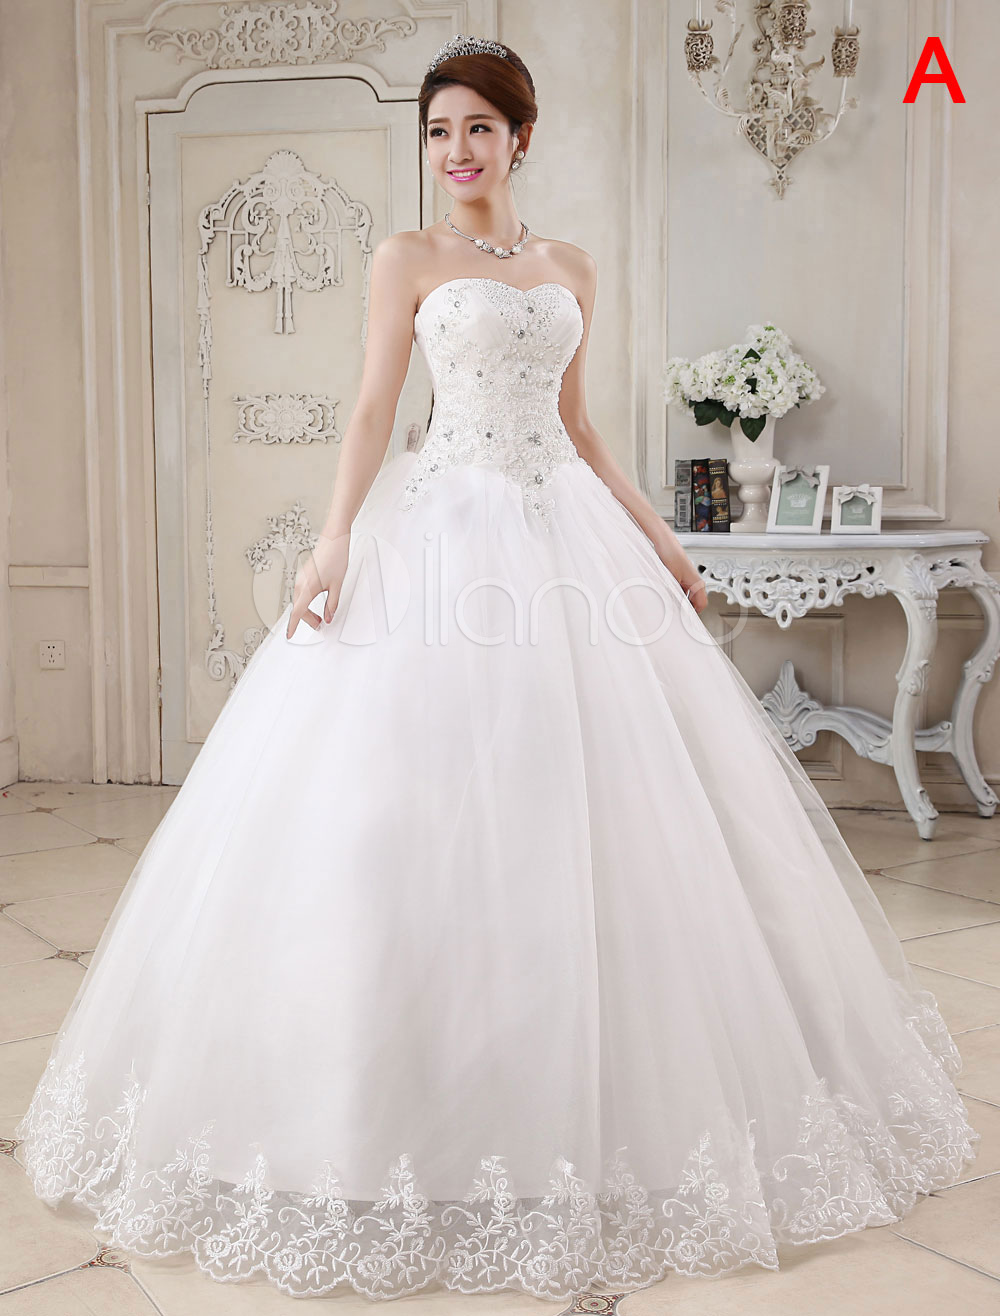 b9d8af0778f7 Princess Wedding Dresses Ivory Ball Gown Bridal Dress Strapless Sweetheart  Neck Lace Beaded Pleated Wedding Gown ...